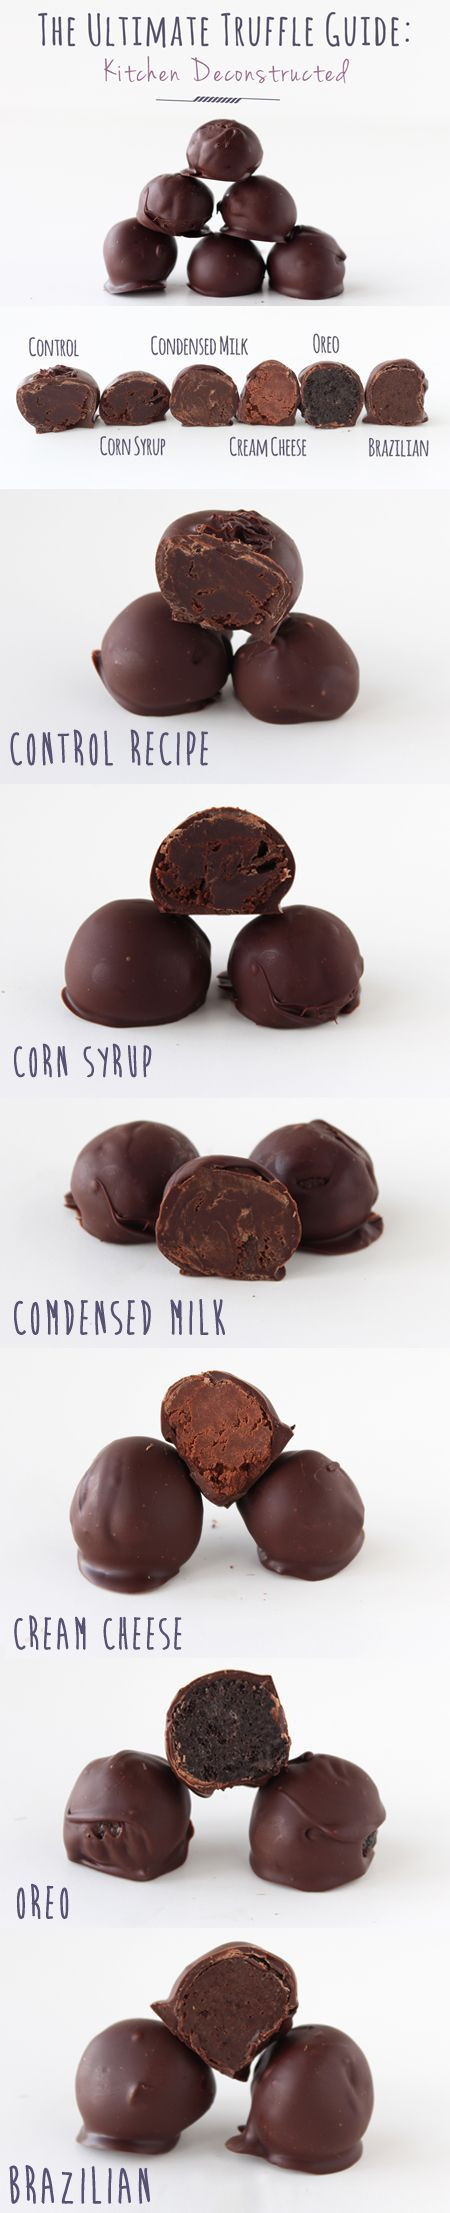 The Ultimate Chocolate Truffle Guide: 1 truffle recipe made 6 different ways